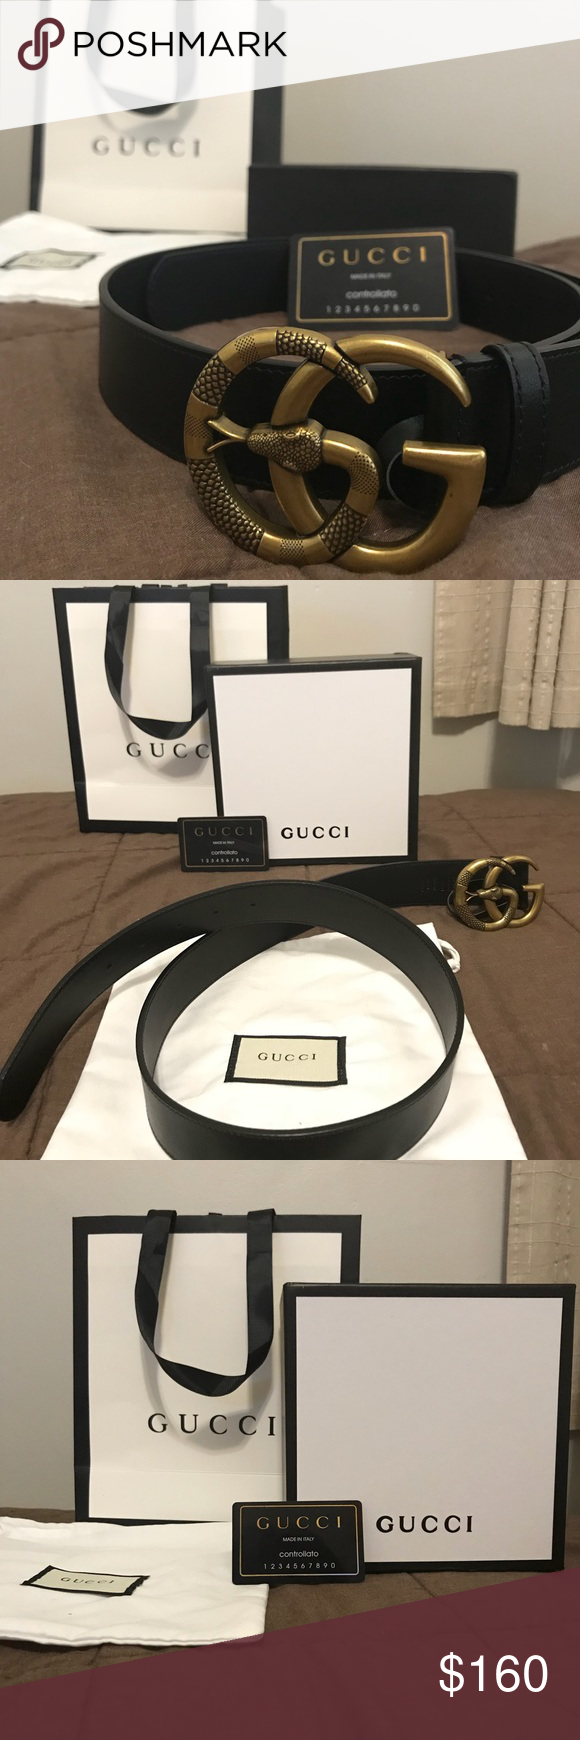 671706e5563 Gucci Snake Buckle Leather Belt Authentic Gucci Belt with Snake G. Belt is  basically new